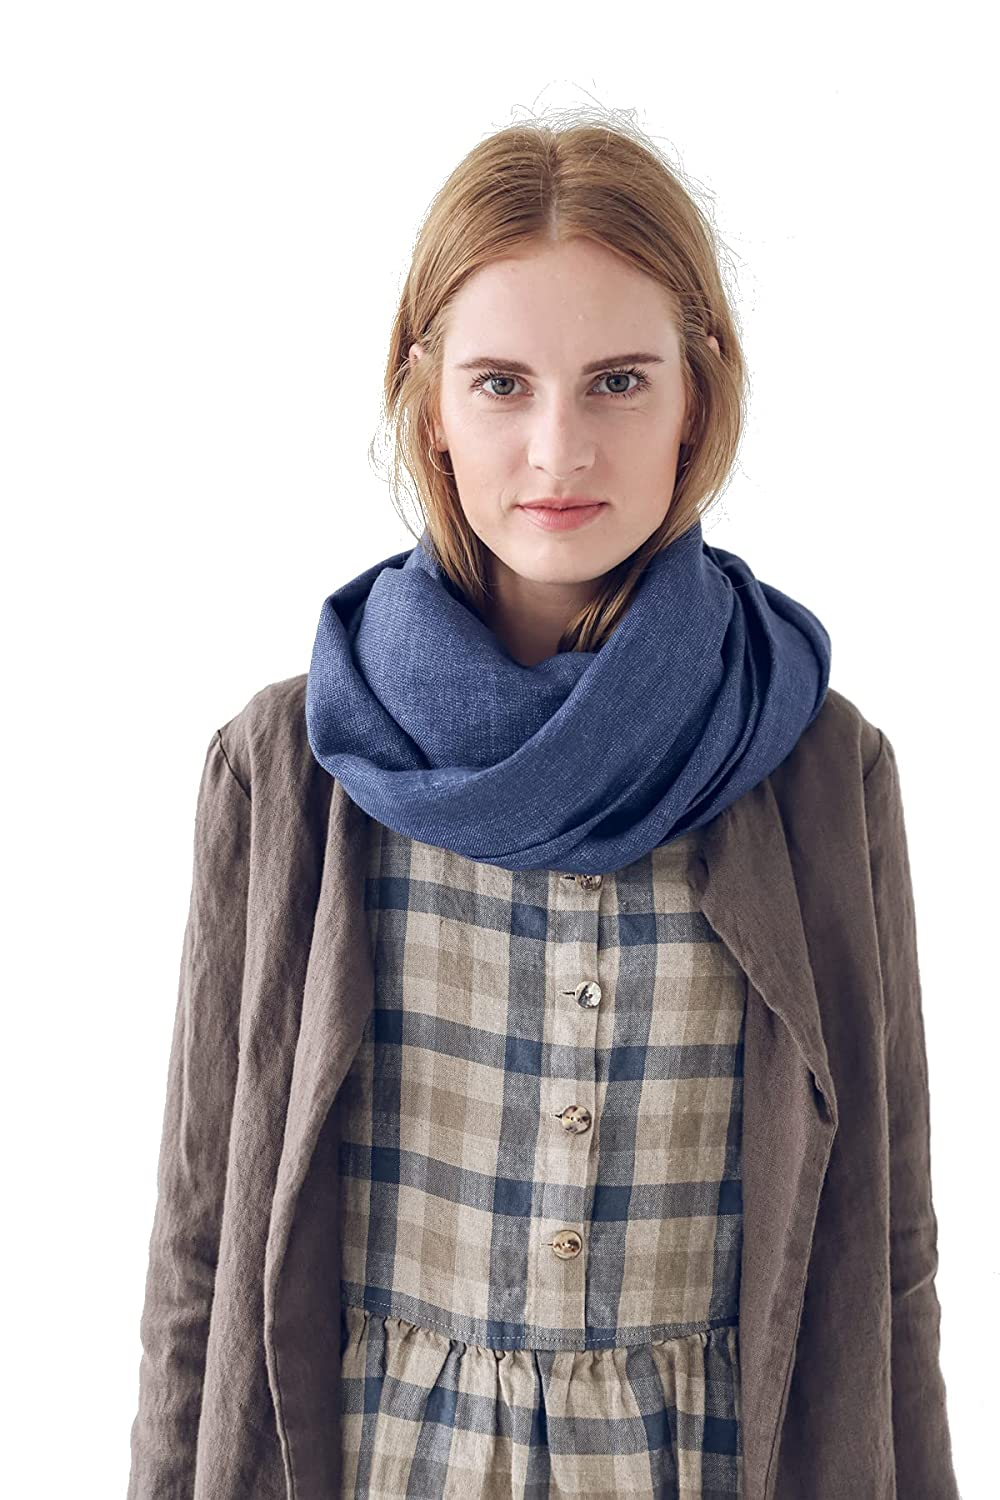 Unisex Wool Max 44% OFF Ranking TOP11 Linen Scarves Winter Autumn for Scarf Women Men Fa